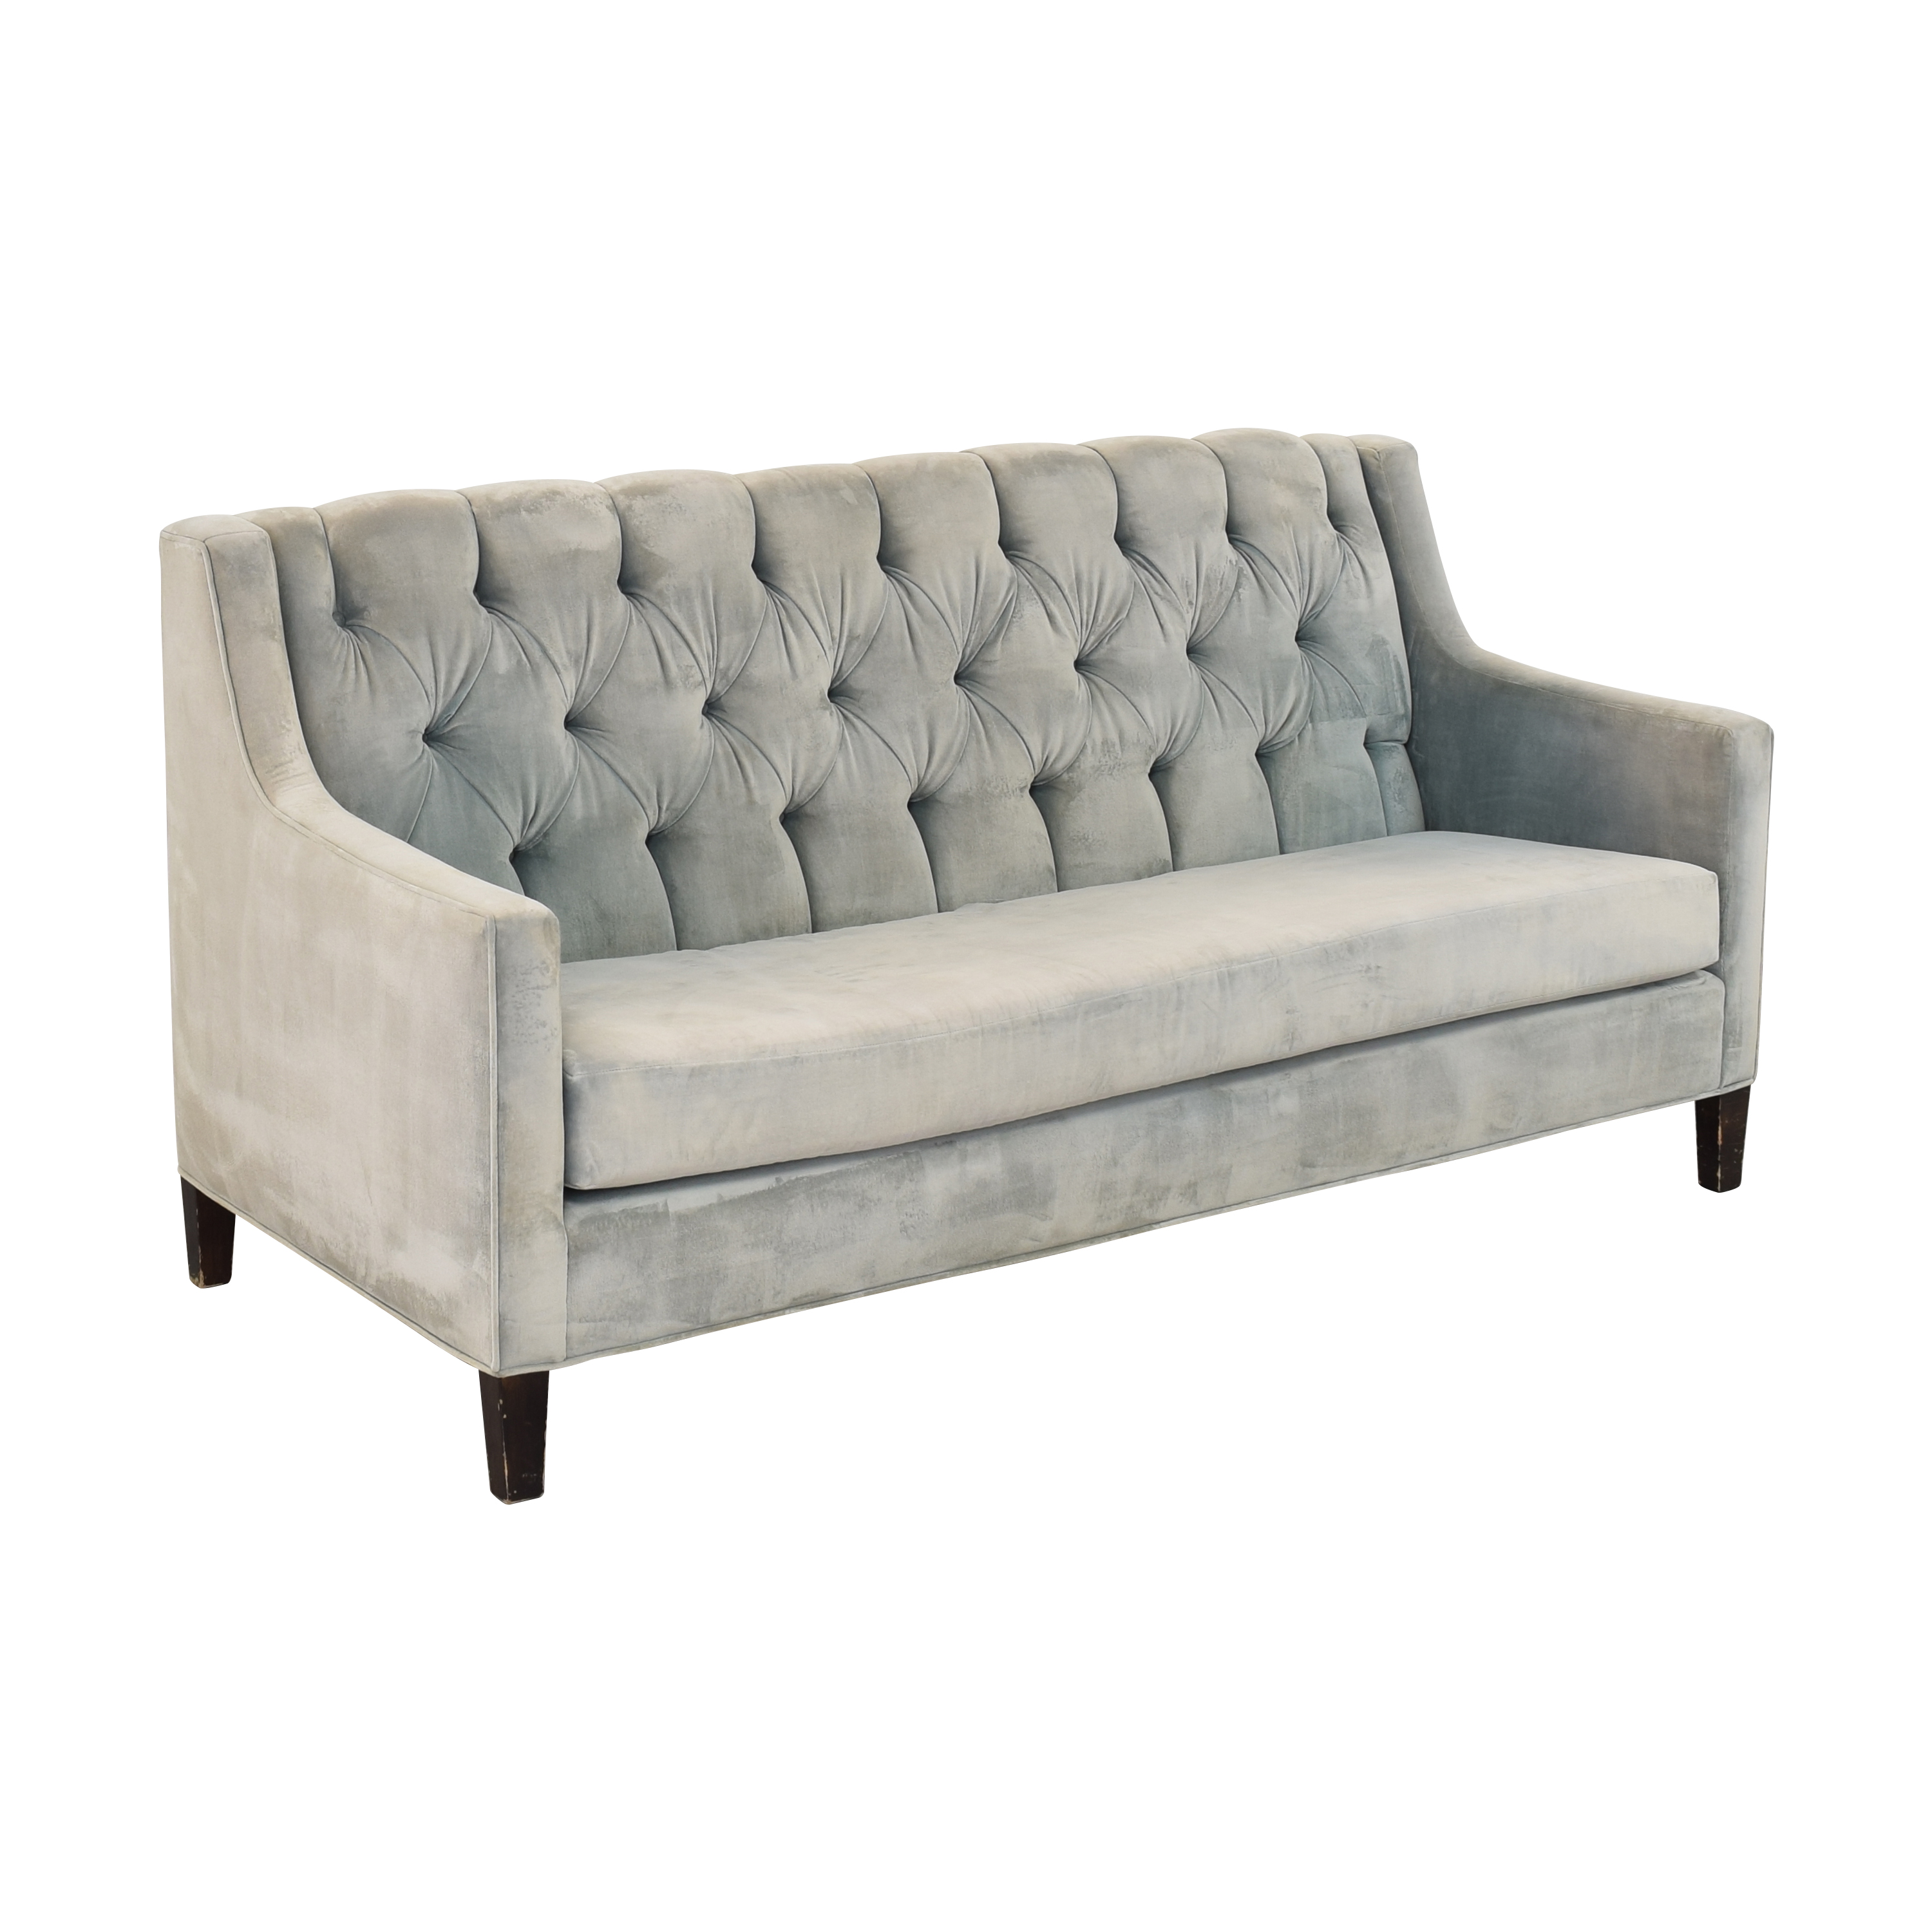 Tufted Upholstered Sofa nyc